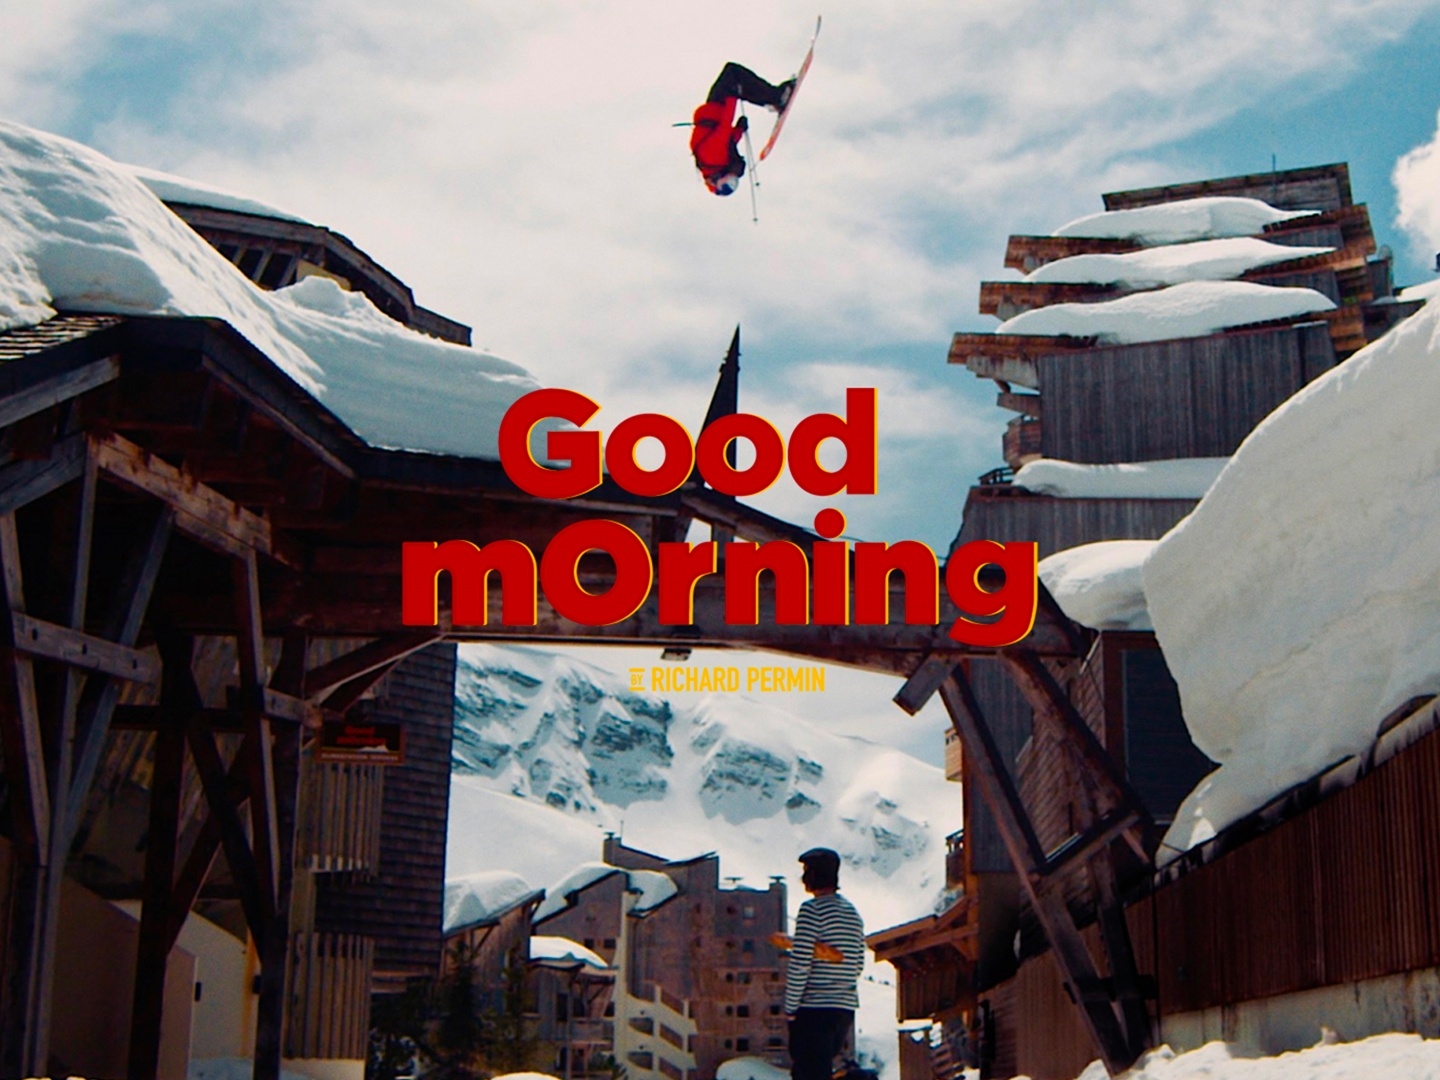 GOOD MORNING by RICHARD PERMIN: ROOFTOP SKIING Thumbnail